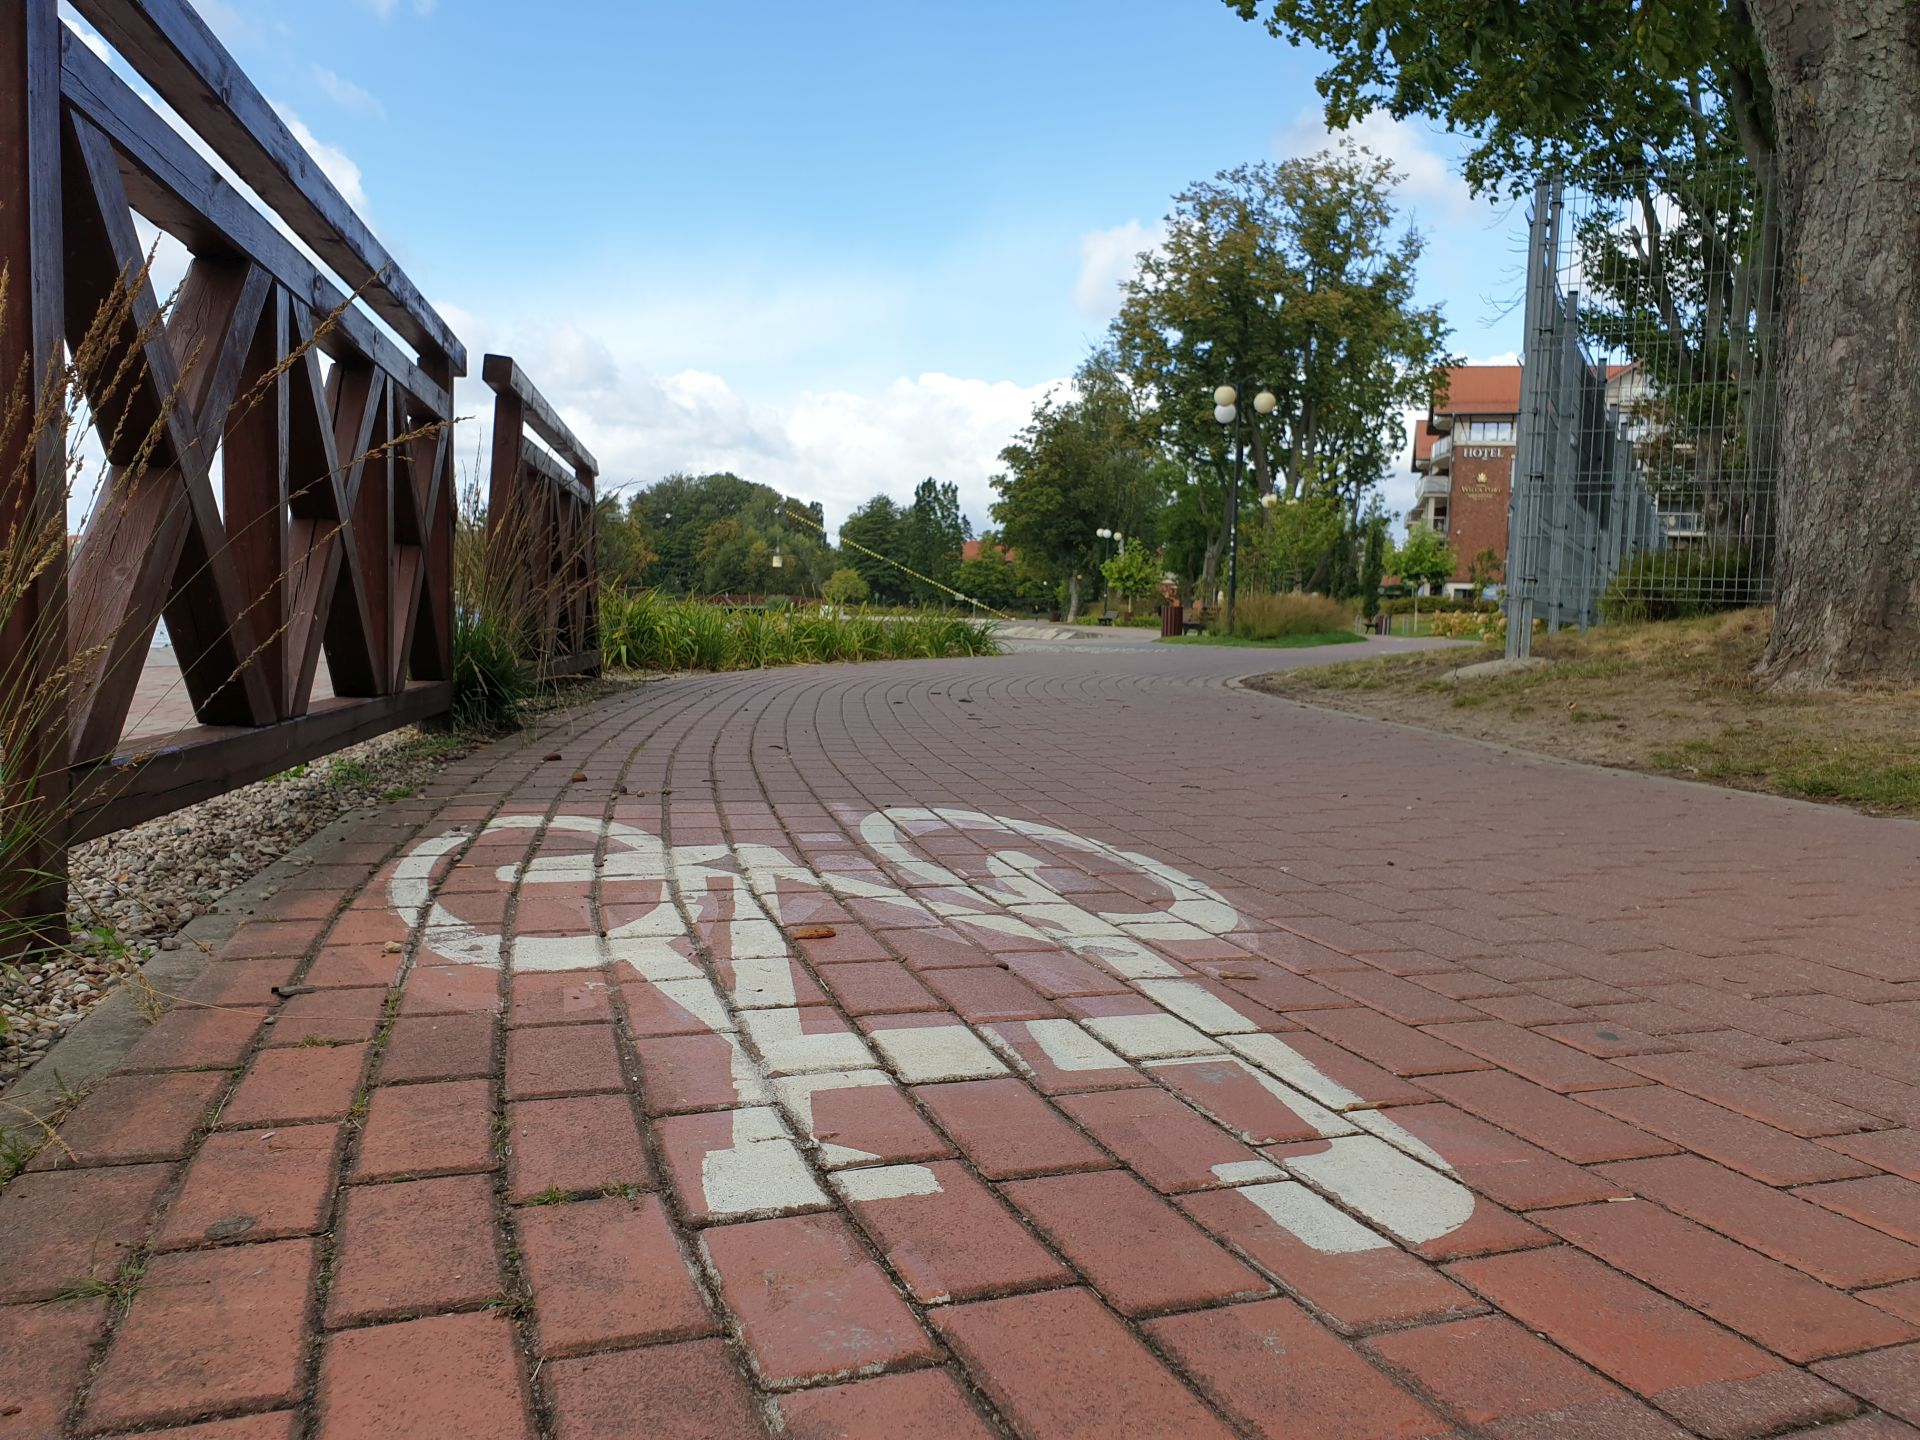 Construction of bicycle paths with associated infrastructure